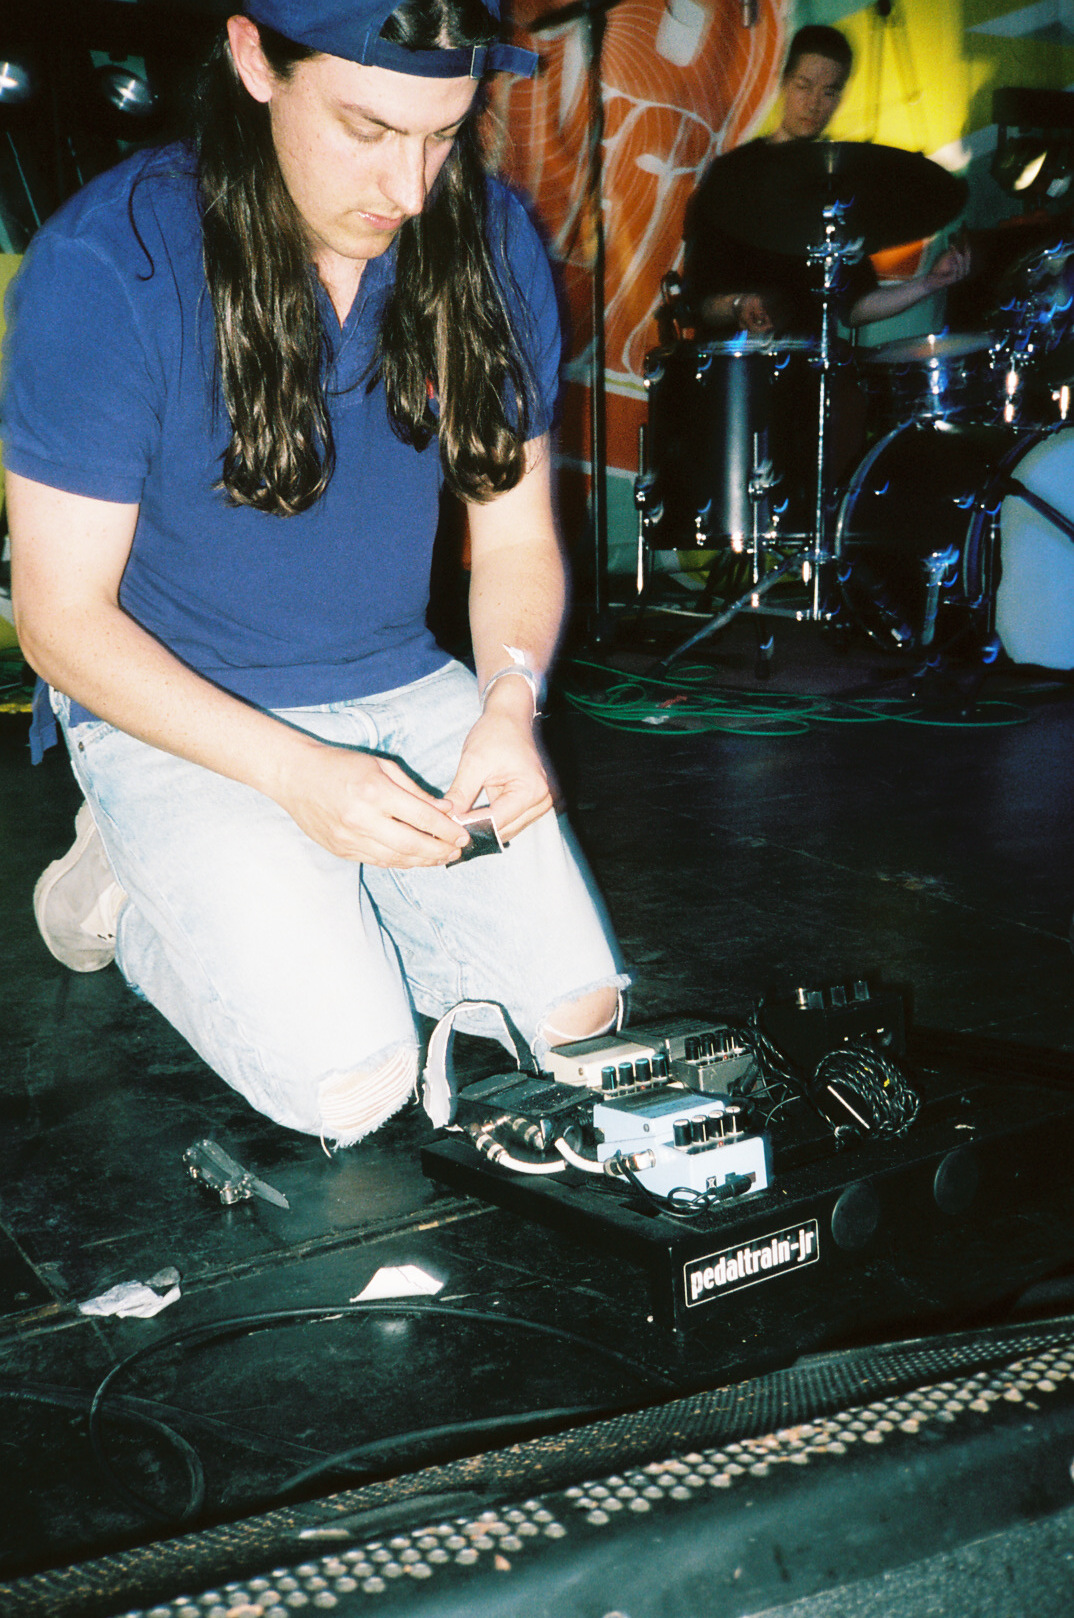 Tommy dialing in his guitar tone and setting up his pedalboard